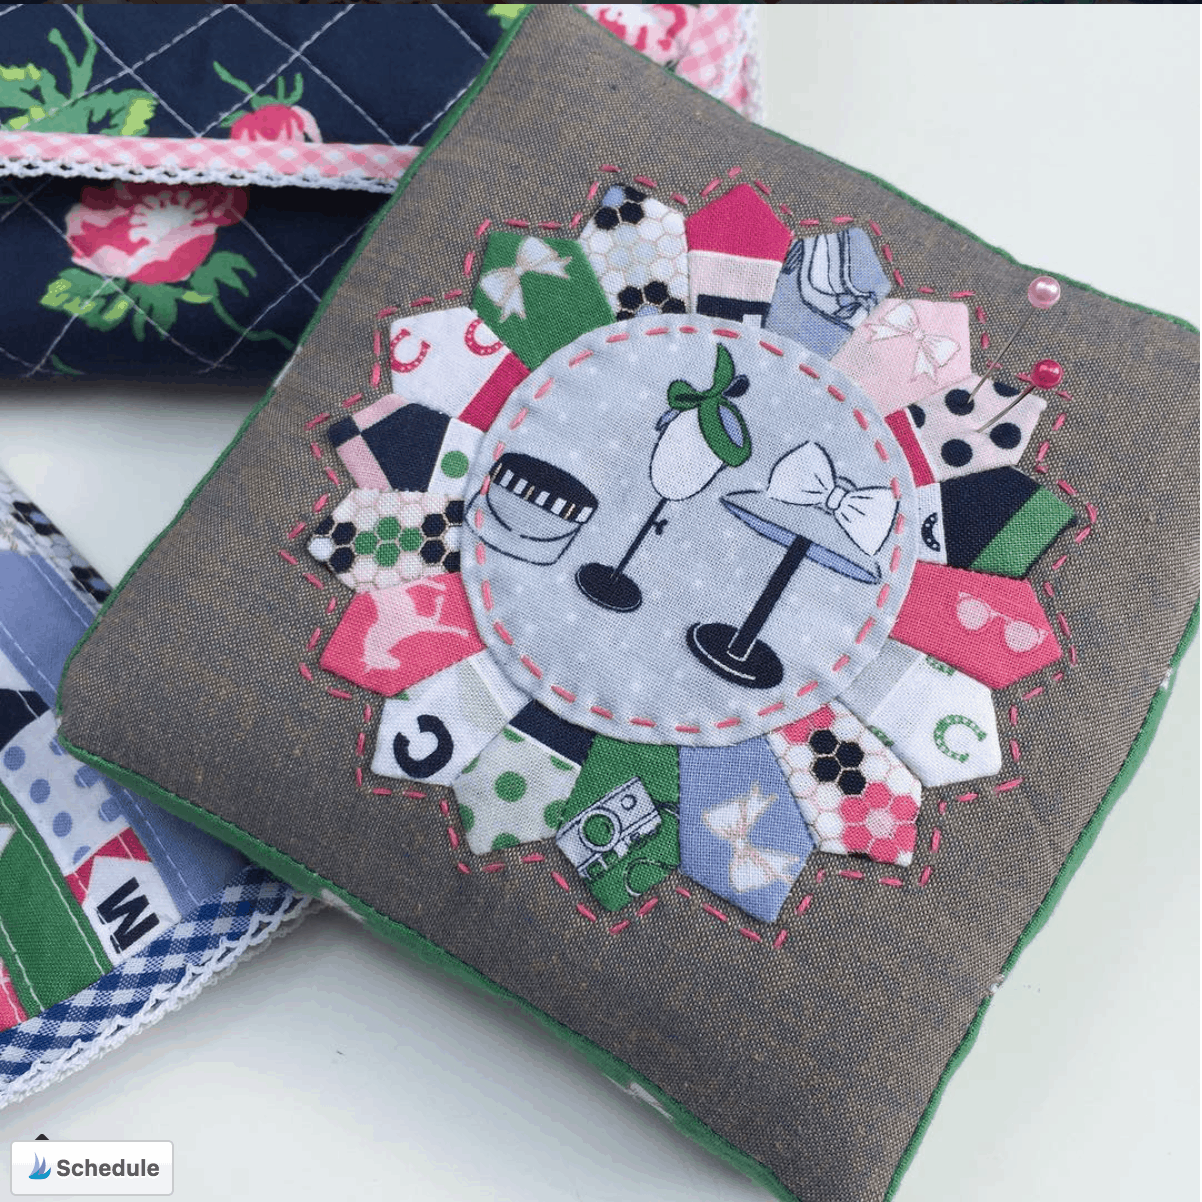 Mini dresden quilt block pin cushion by quilty obsession